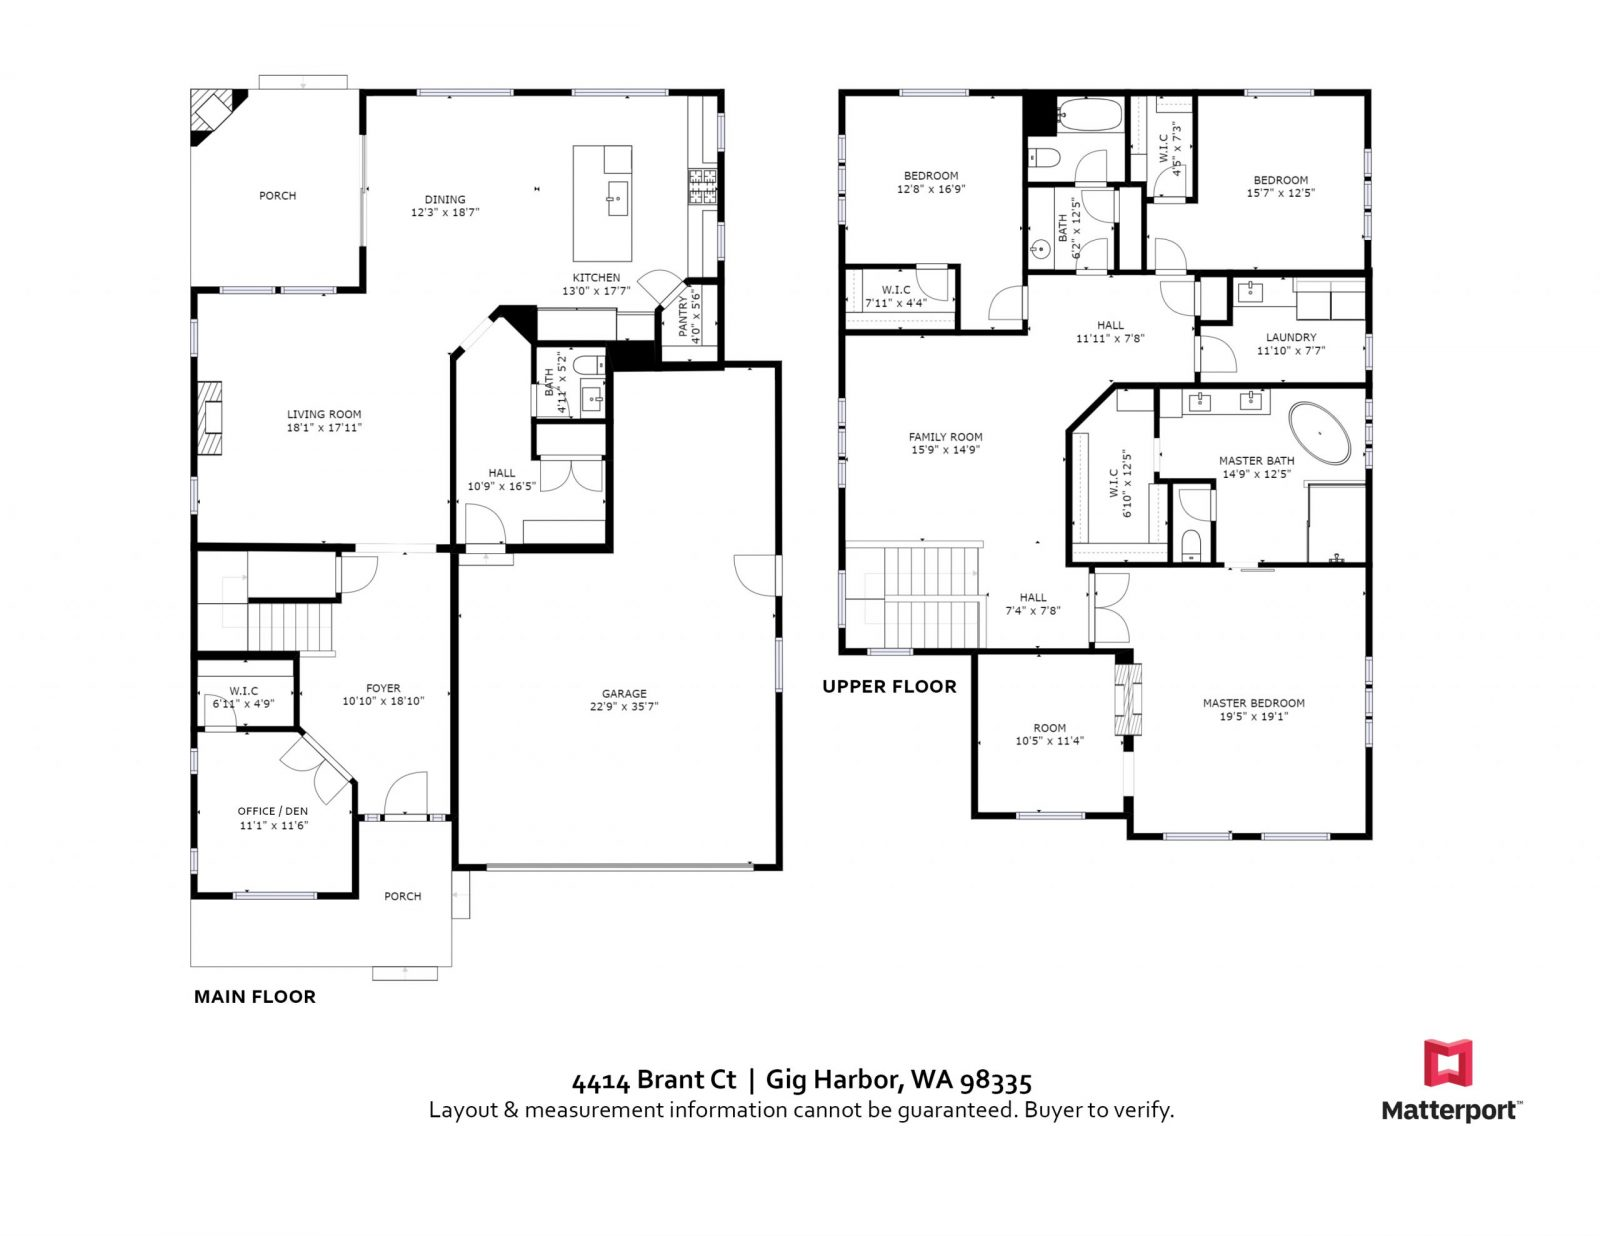 FLOOR PLAN: 4414 Brant Ct, Gig Harbor WA 98335